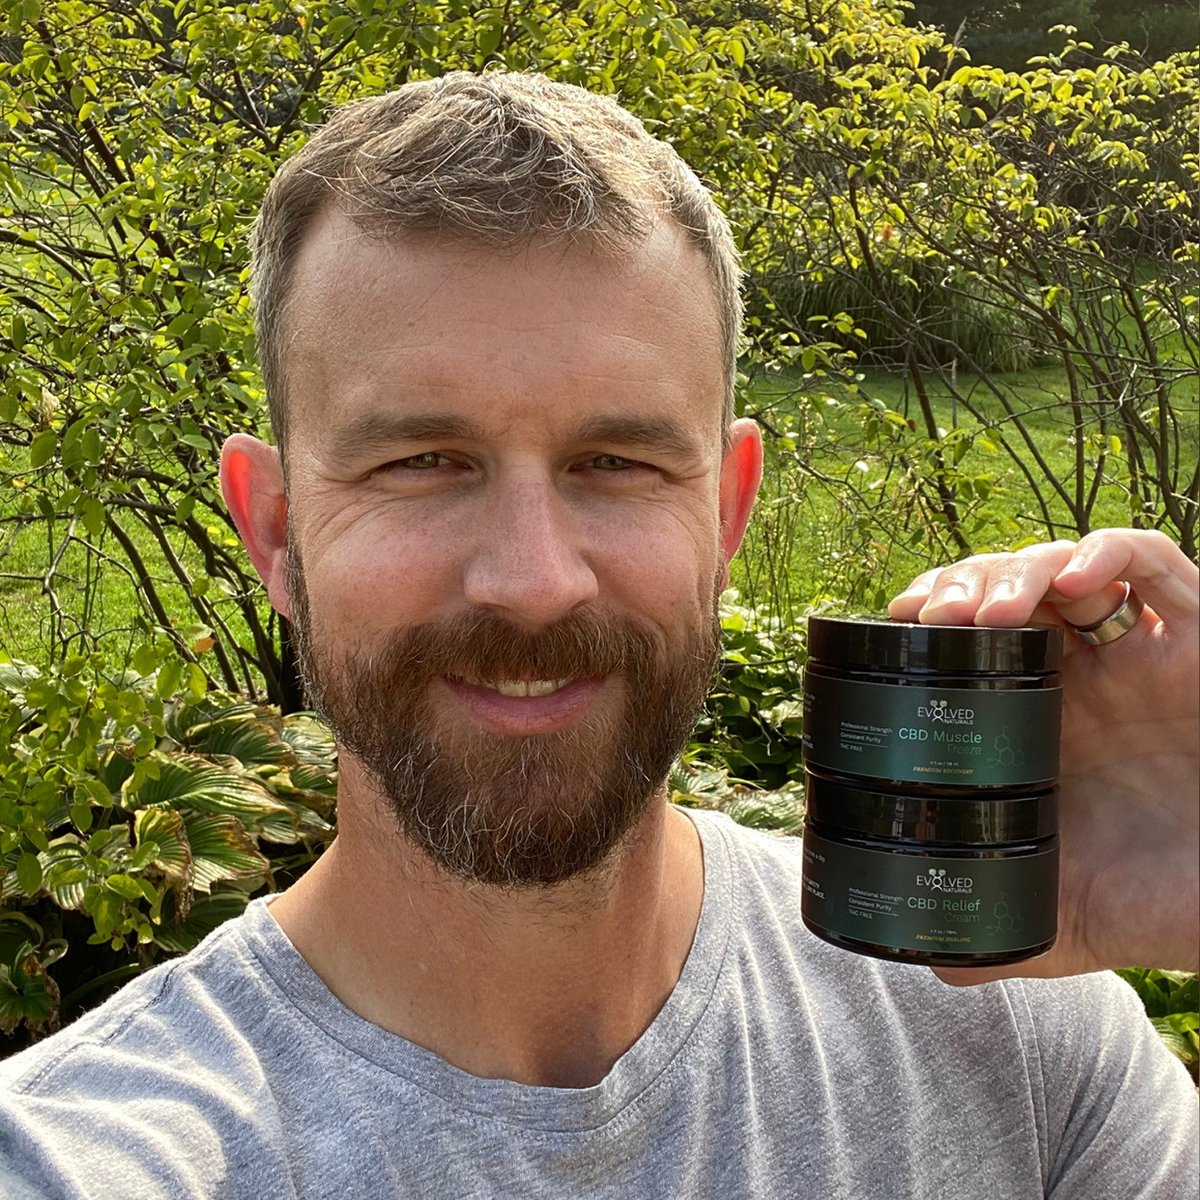 It's a TEAM here at Evolved Naturals. Not only do we invest our time into the brand, but we actually use the products...AND LOVE THEM 🌿 Meet Jeff • he uses our muscle freeze and relief cream to sooth sore muscles/skin #evolvednaturals #wellness  #allnatural #liveyourbestlife https://t.co/0a1DdnhFvi